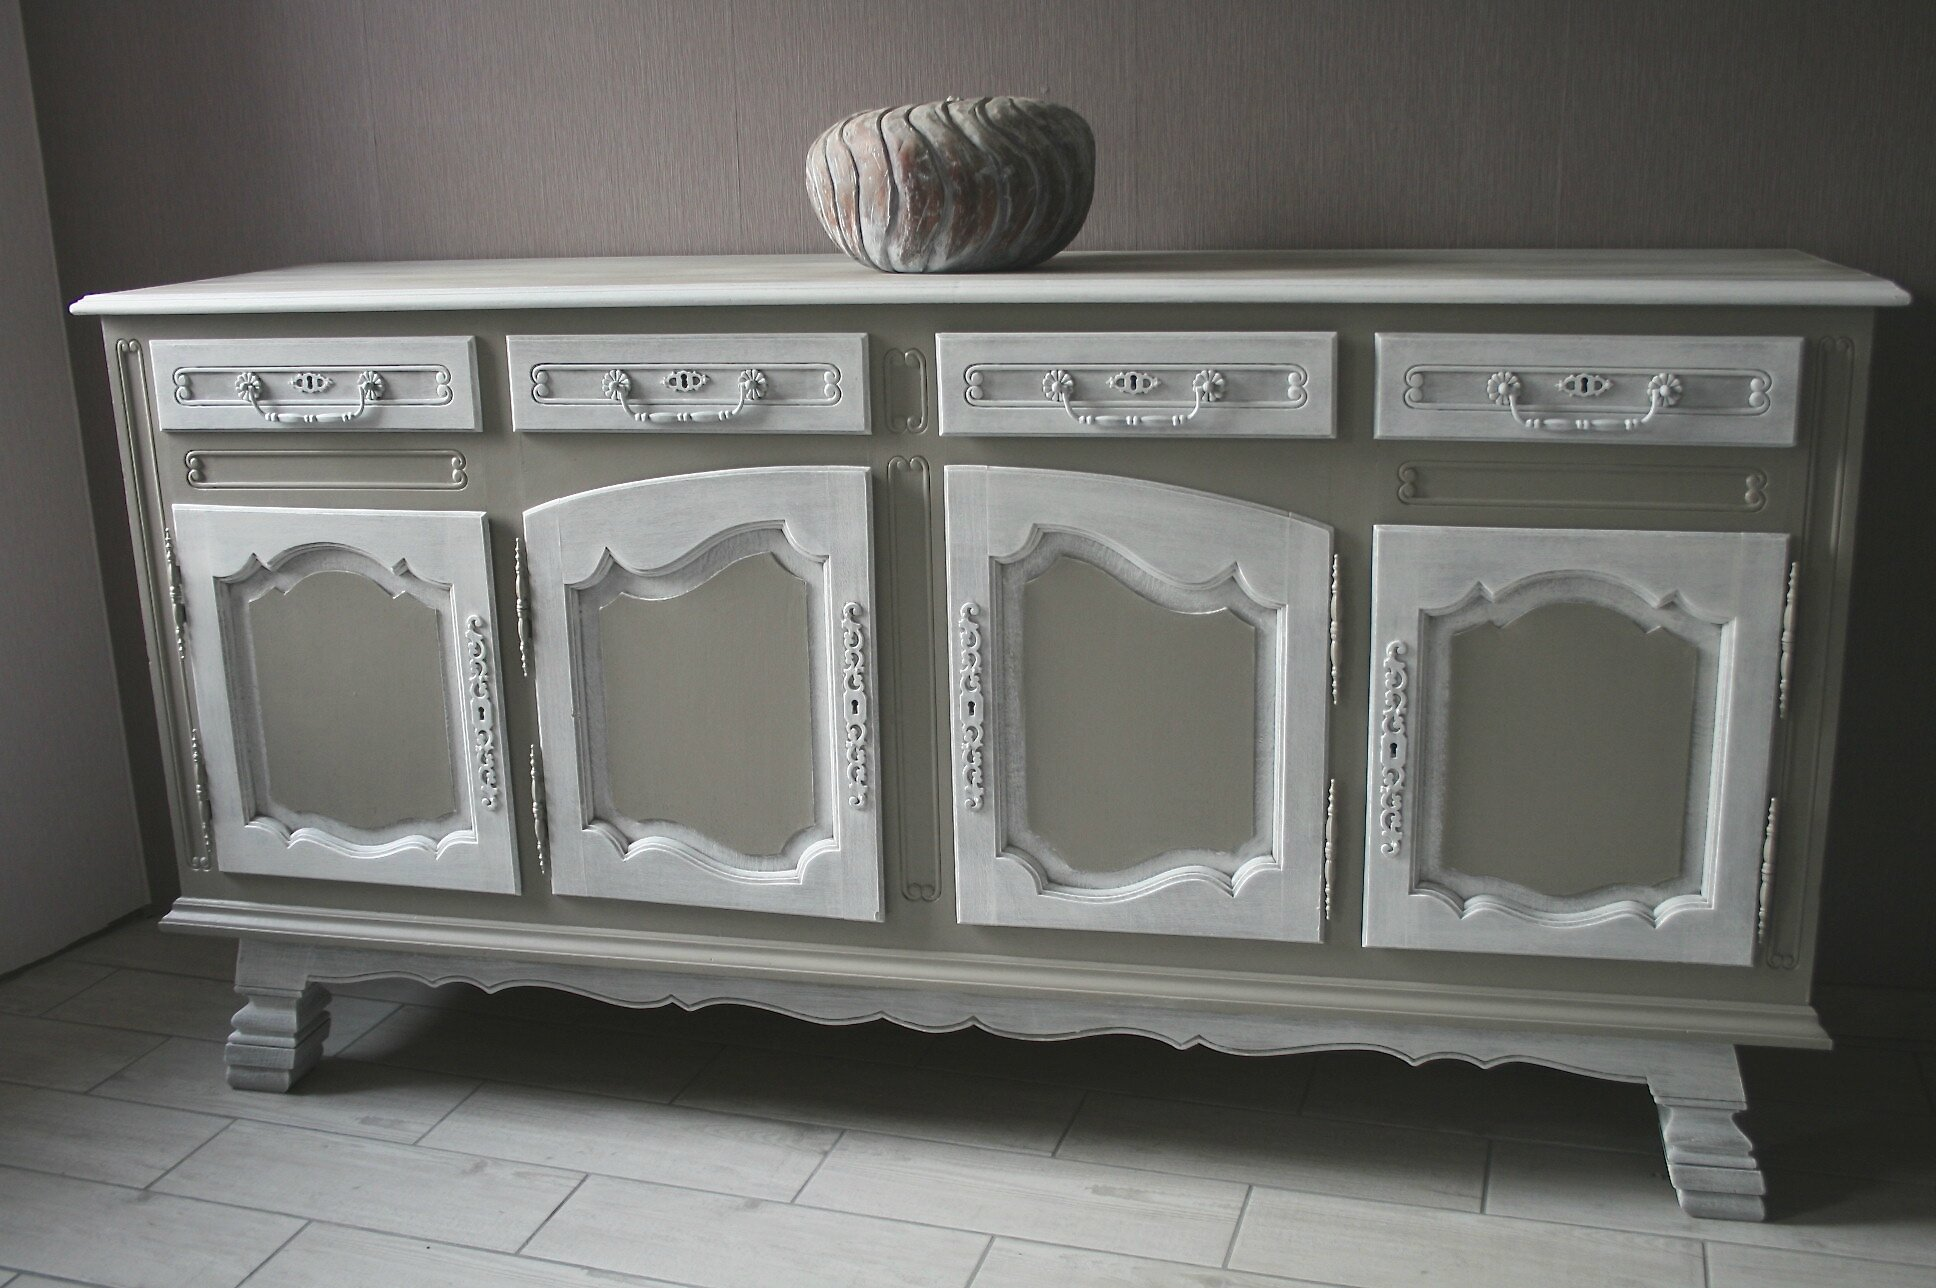 Grand Meuble Buffet Bahut Commode En Ch Ne Massif Stylis E Patine Blog De Missantic Pour